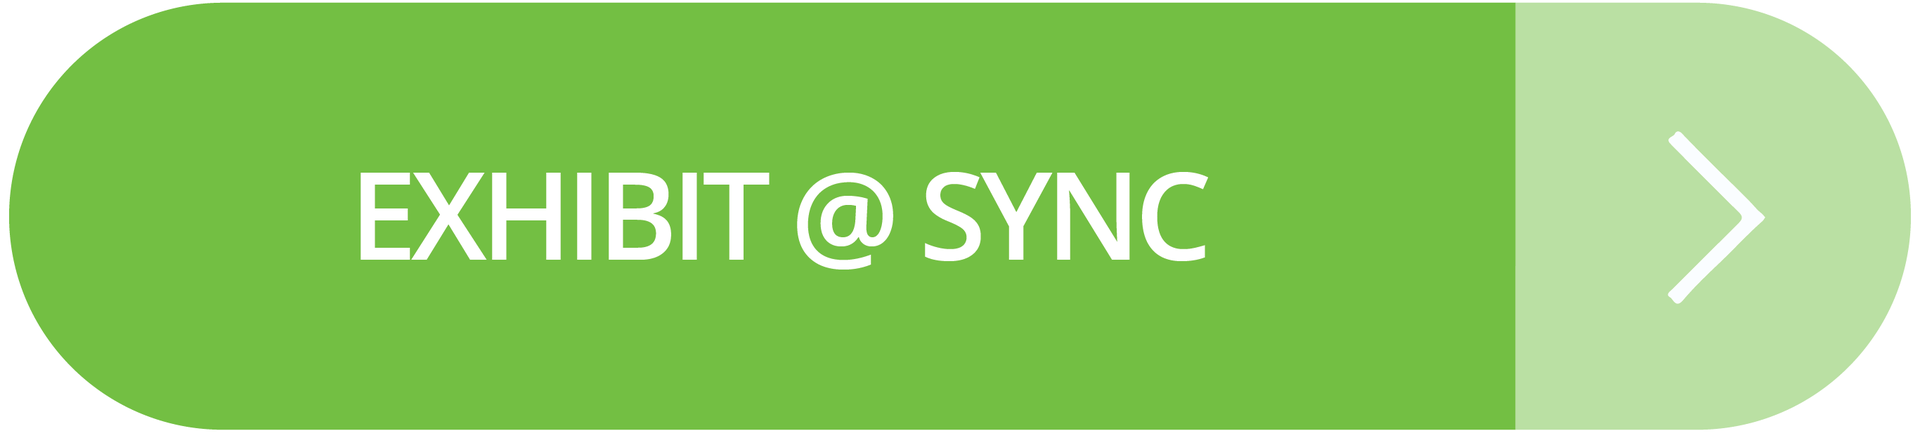 SYNC 2020 Exhibitors - Button